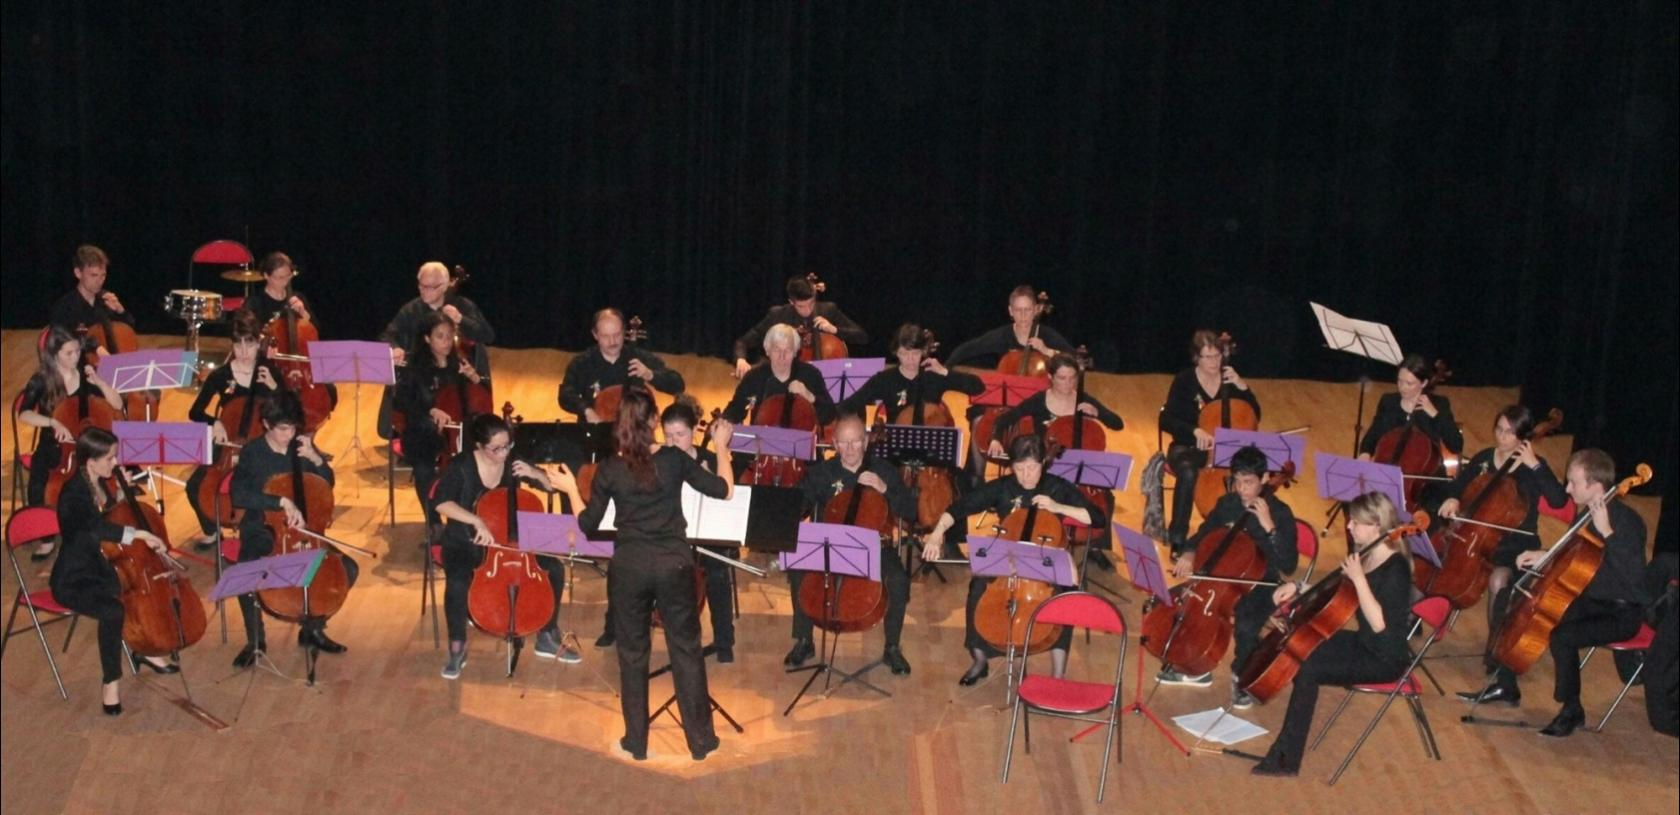 Concert Cellimax Combourg